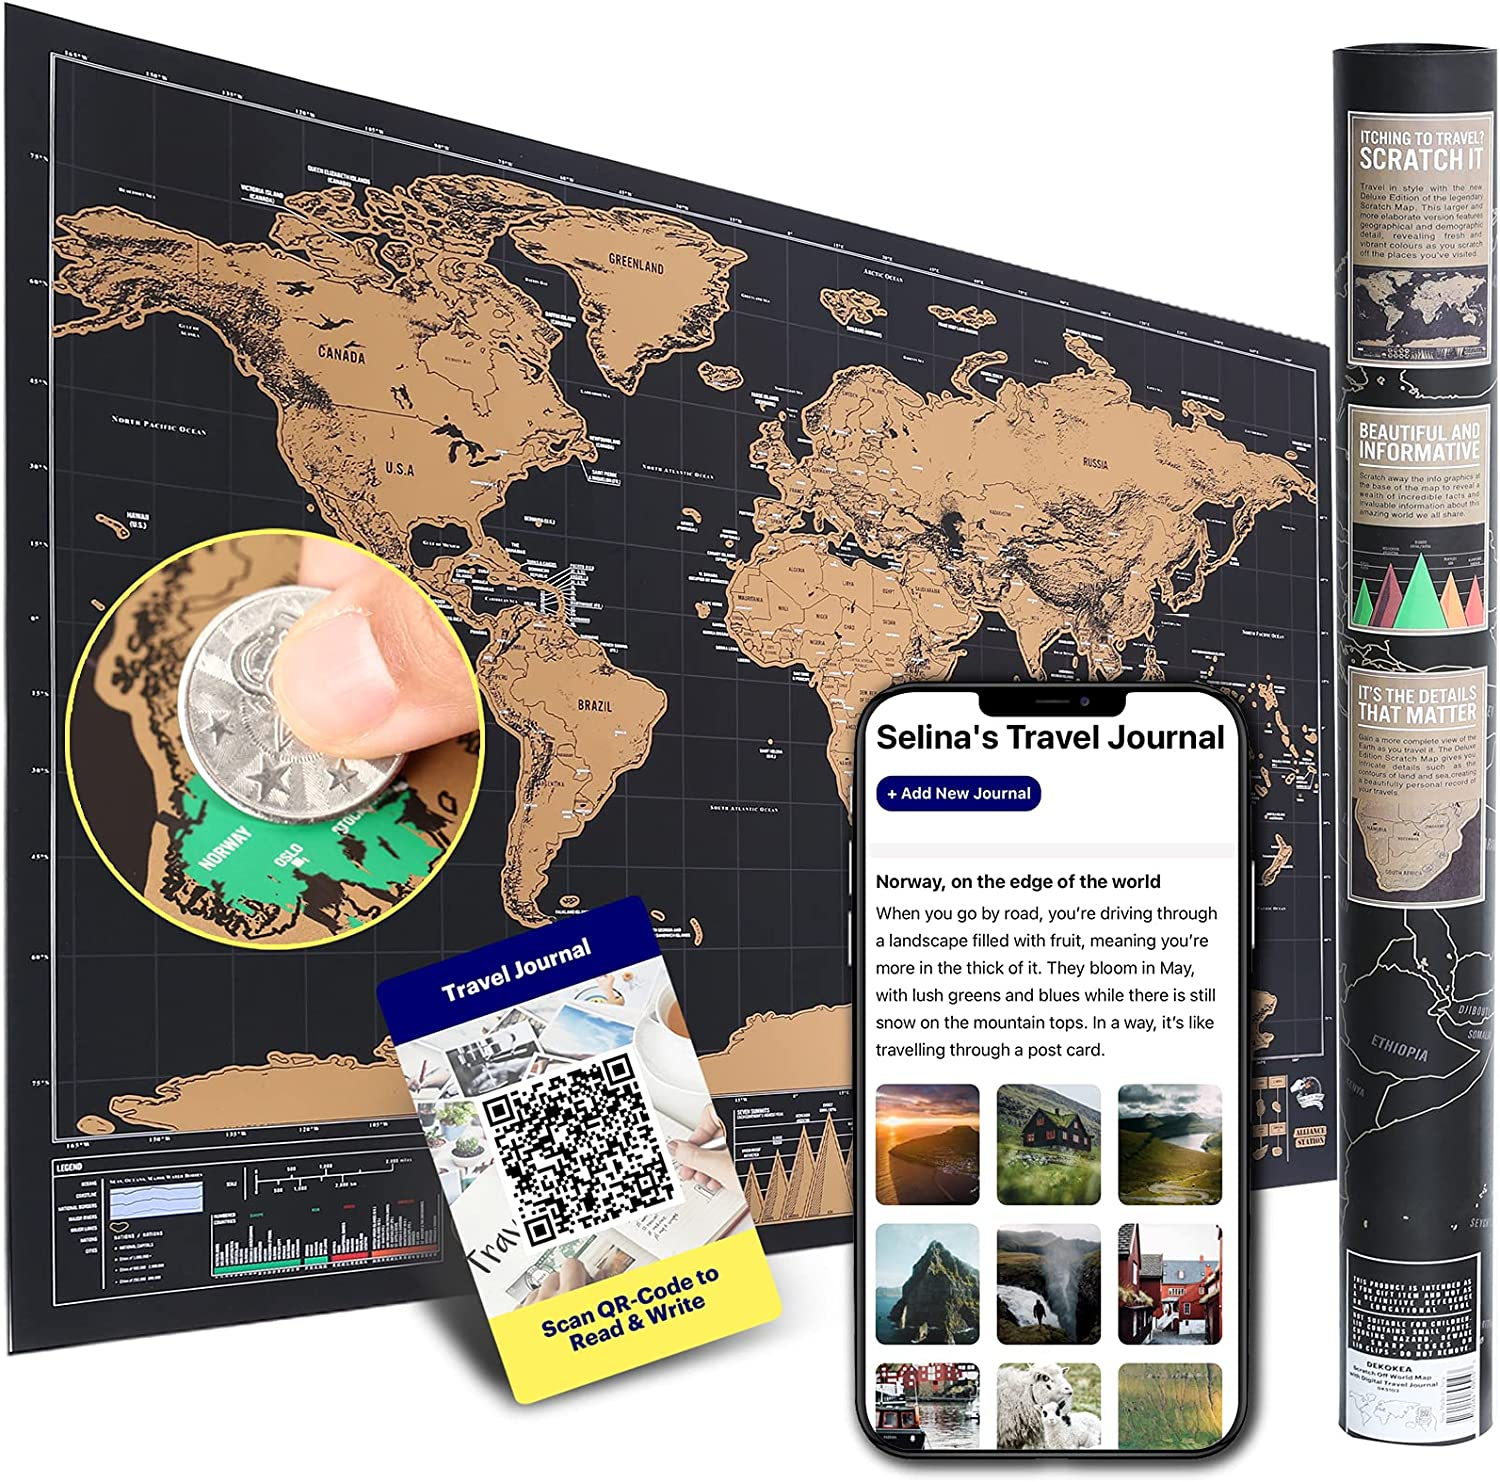 XL Scratch Off World Map Poster Travel with Journal Digital Ultra-Cheap Deals for Free shipping New